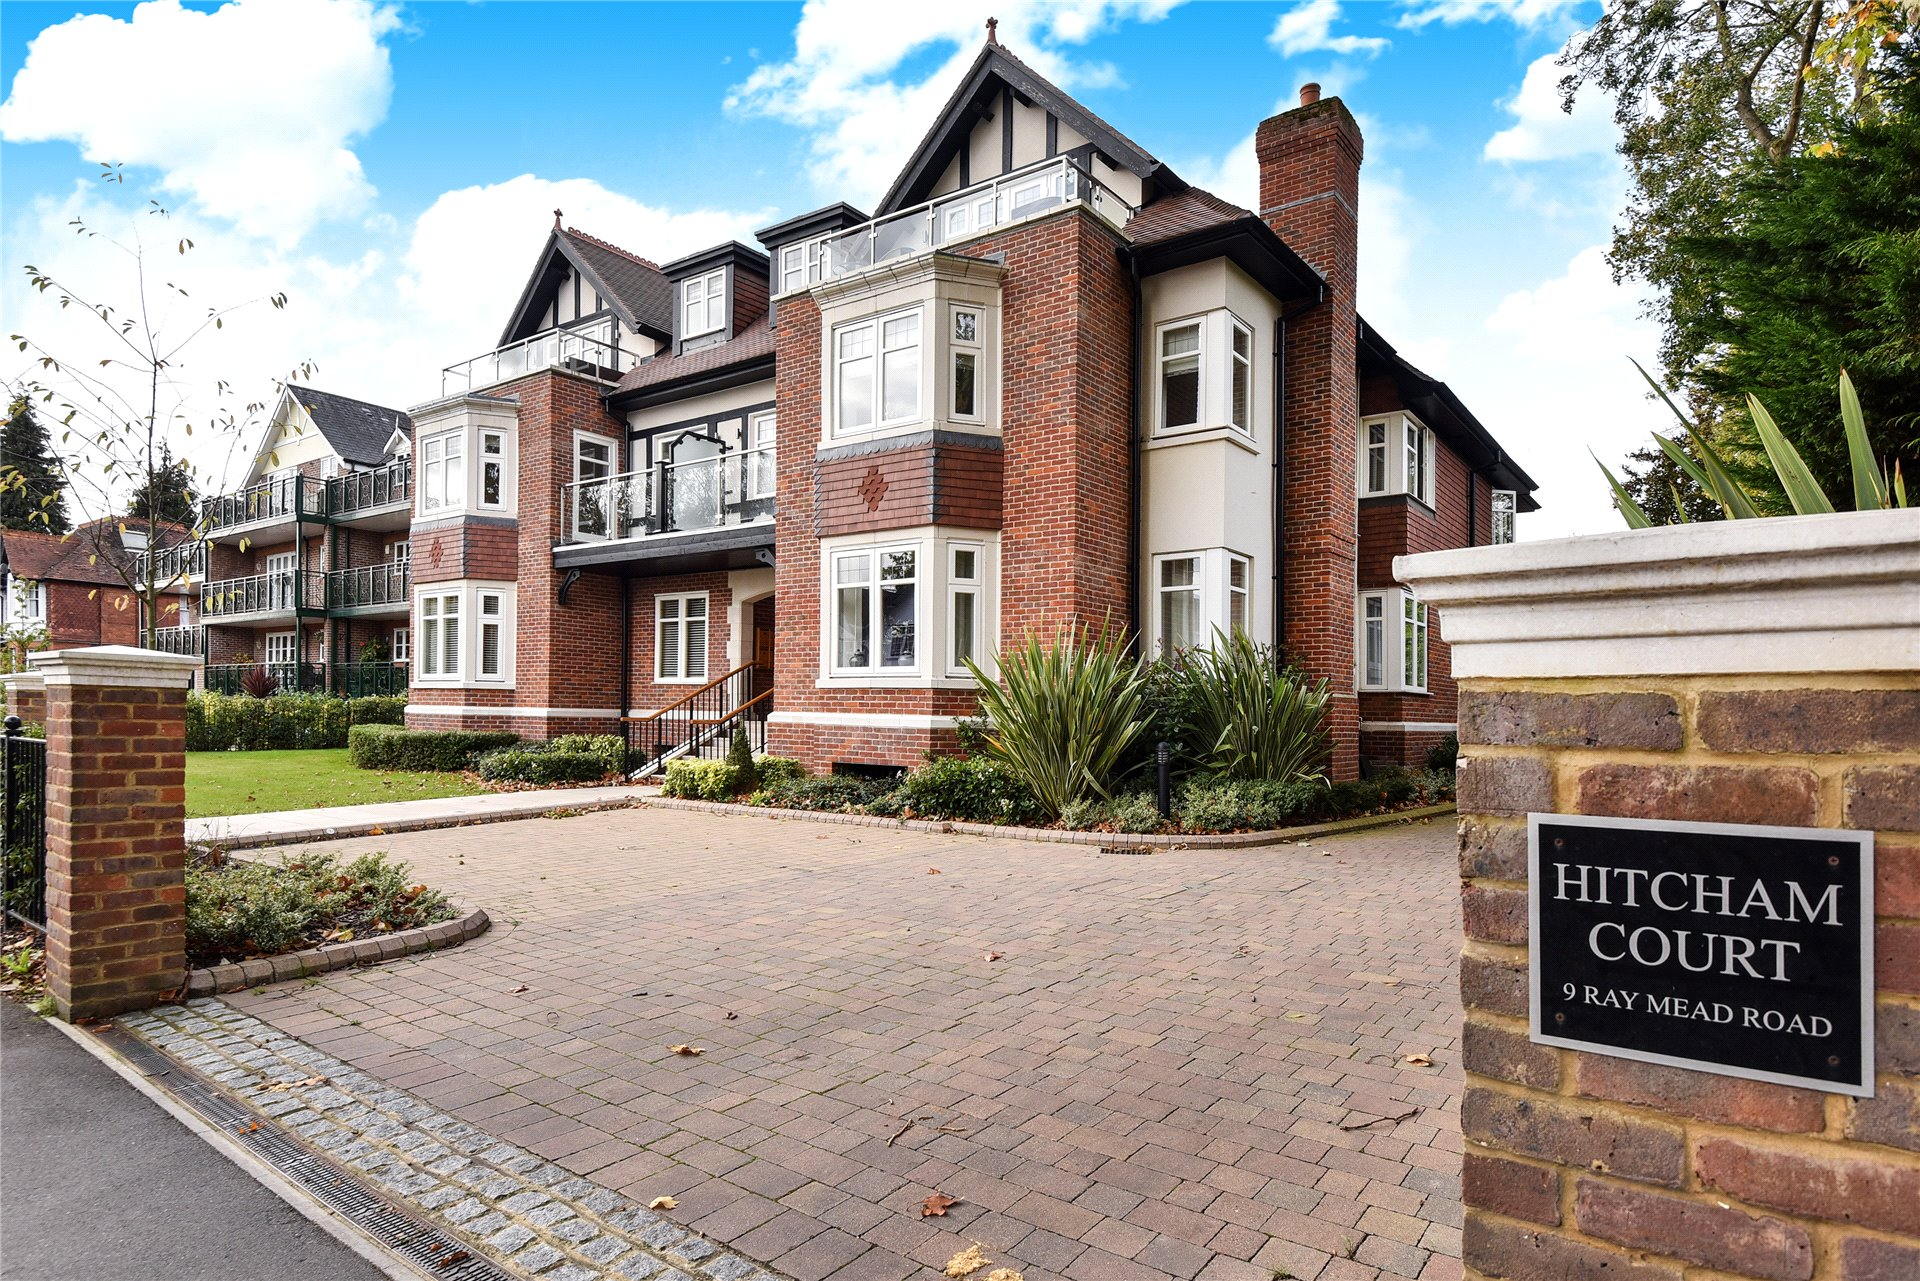 2 Bedrooms Apartment Flat for sale in Hitcham Court, Ray Mead Road, Maidenhead, Berkshire, SL6